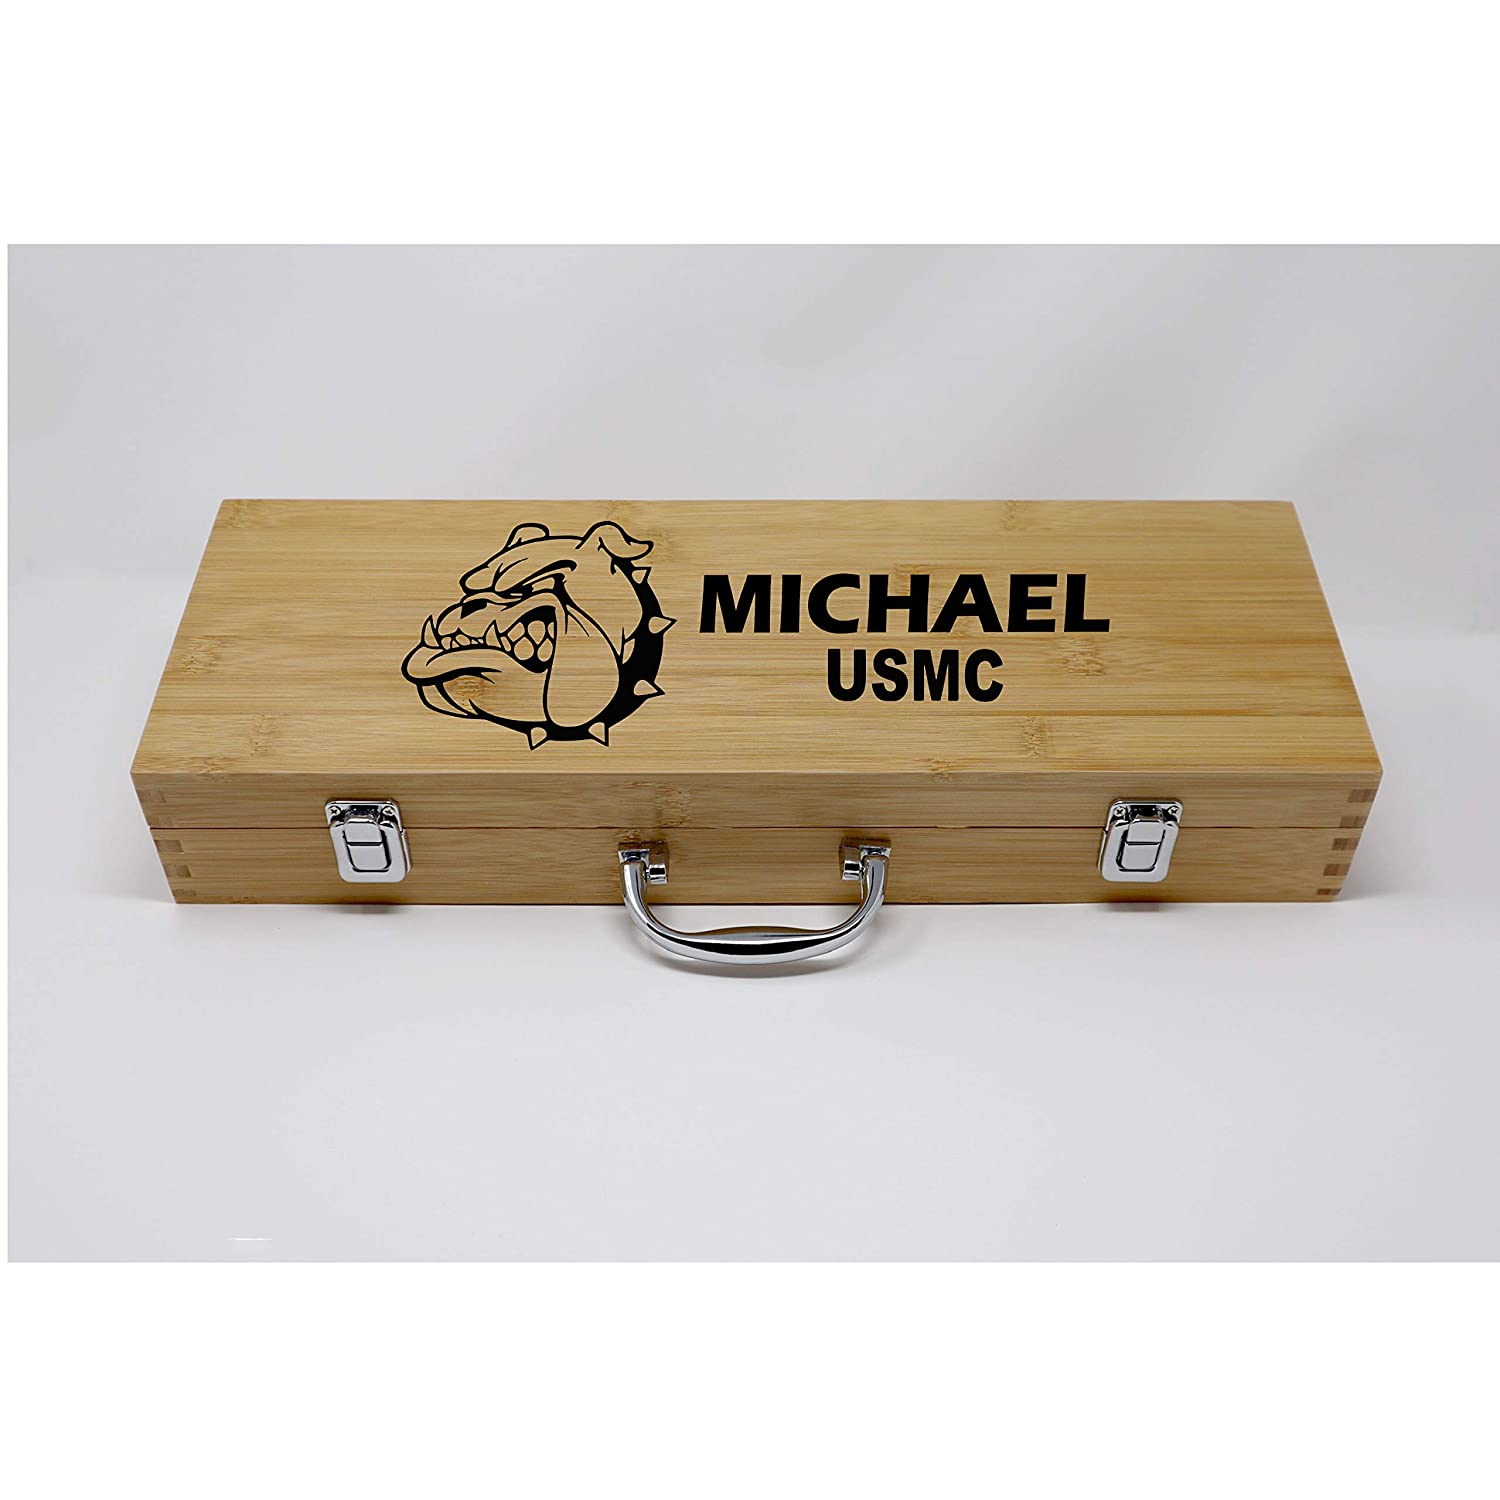 Devil Dog USMC Mascot BBQ Grilling Tool Set Personalized Engraved